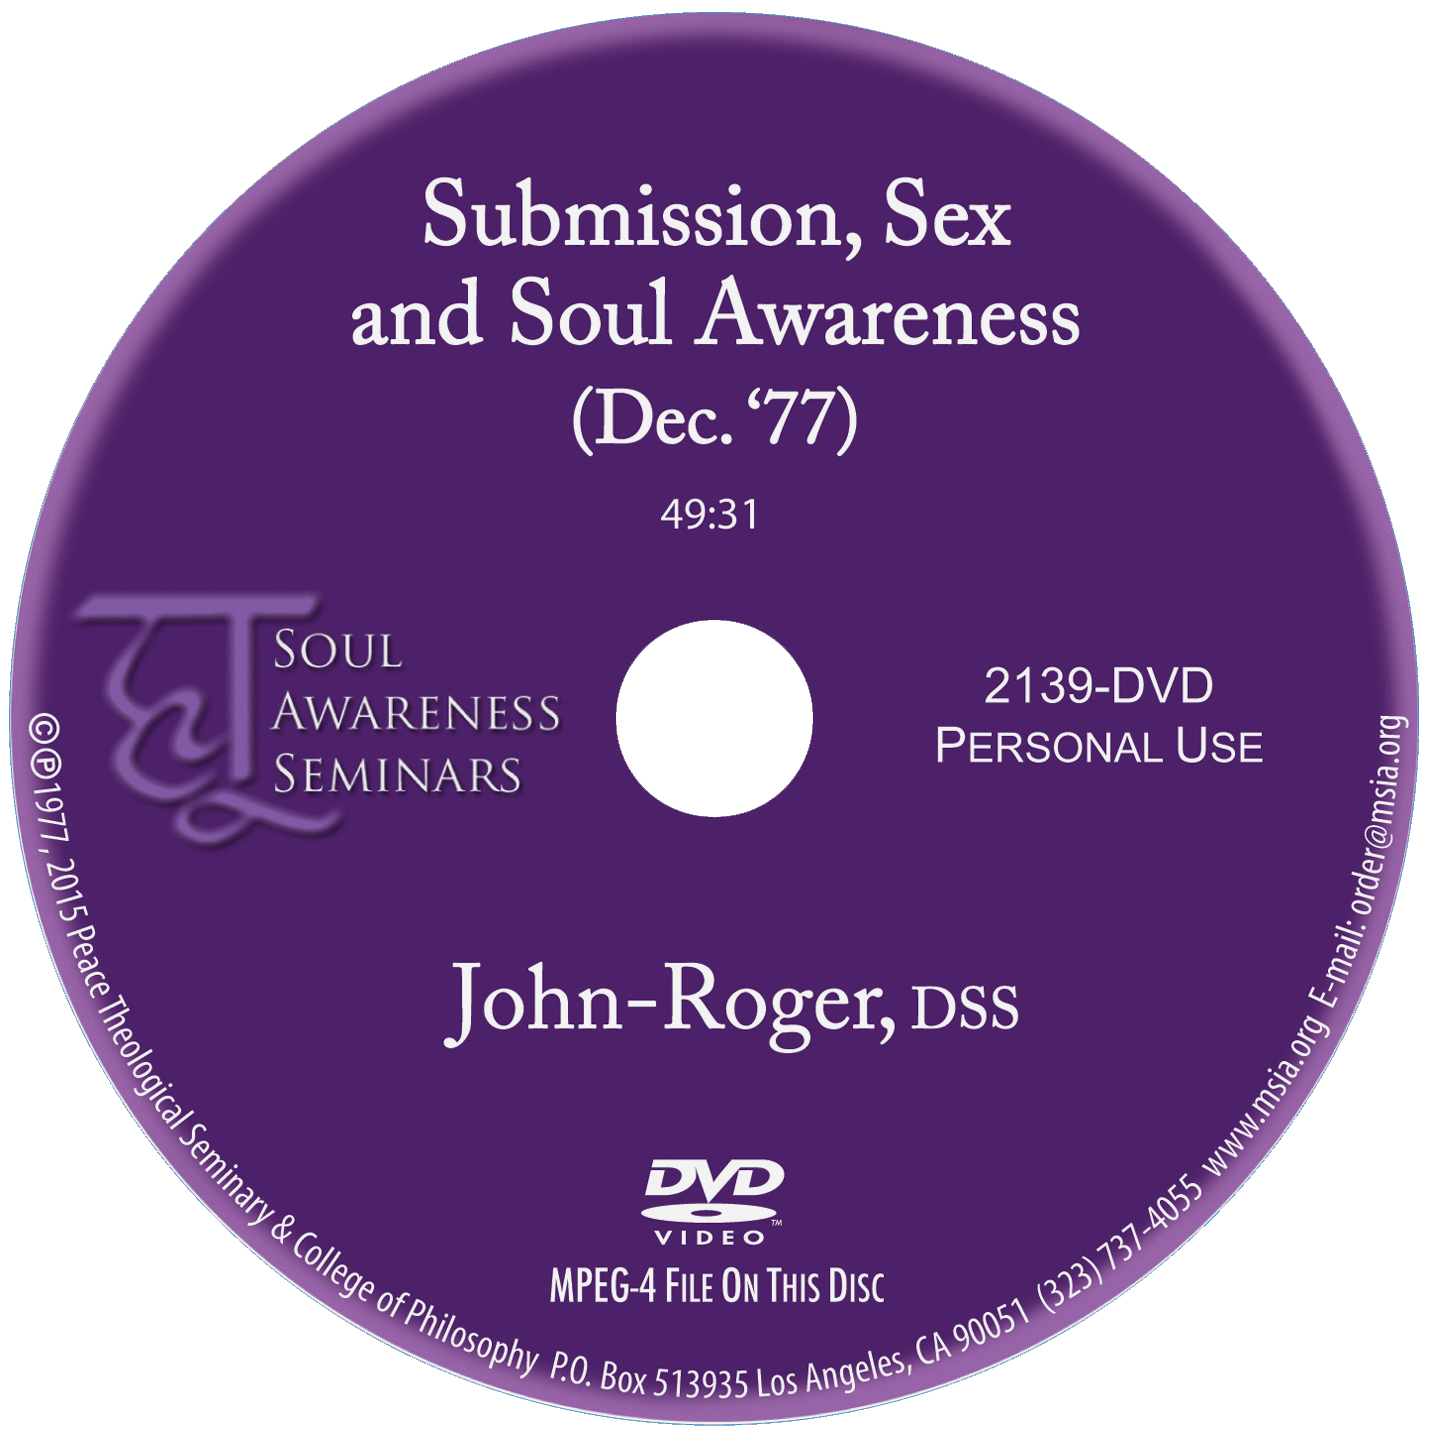 Submission, Sex and Soul Awareness DVD